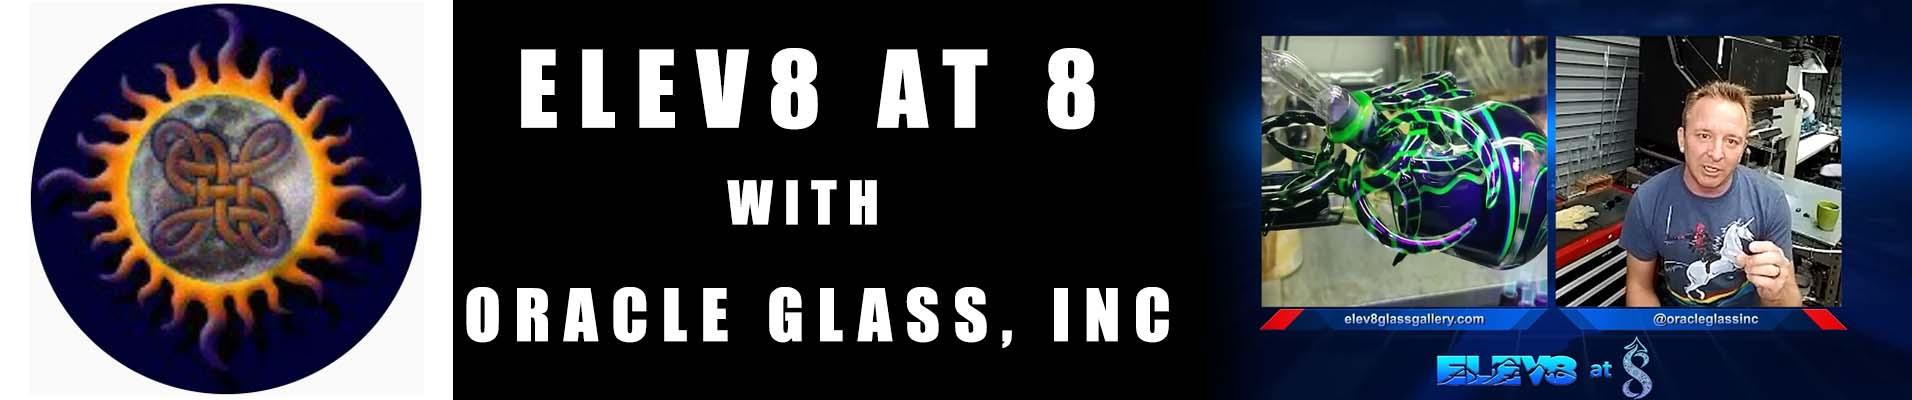 oracle-glass-inc-elev8-at-8-banner.jpg